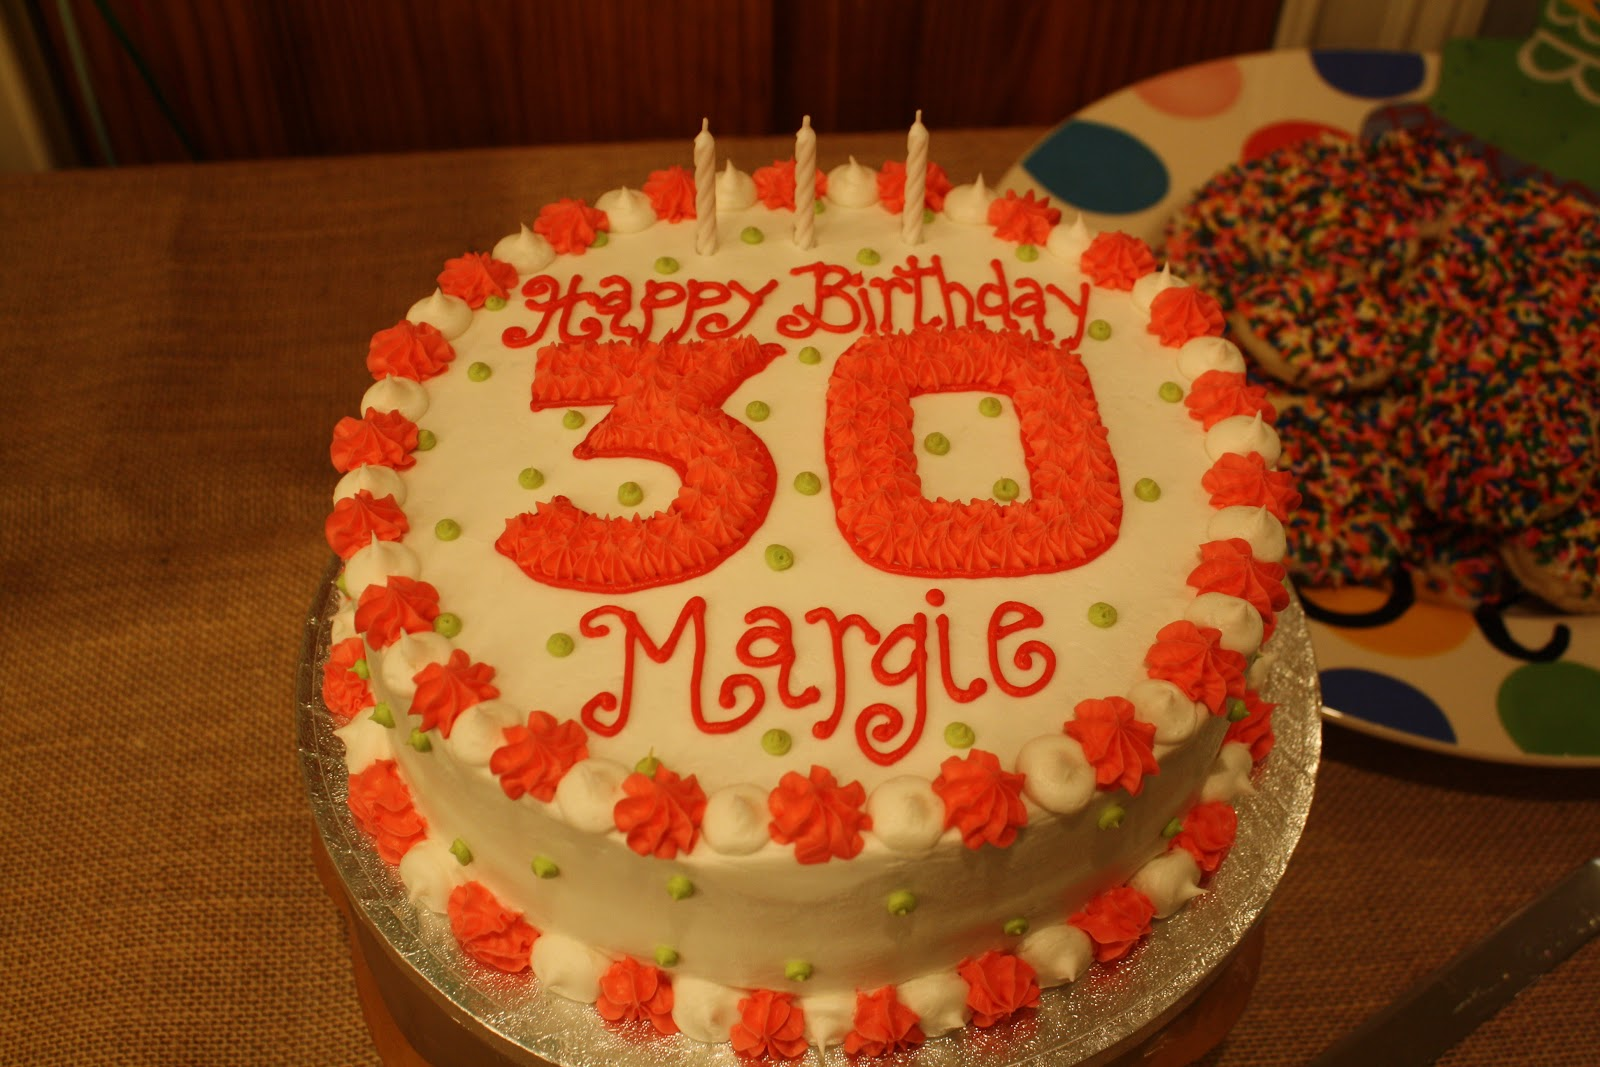 Keeping Up With Kelly: SURPRISE! Happy Birthday, Margie